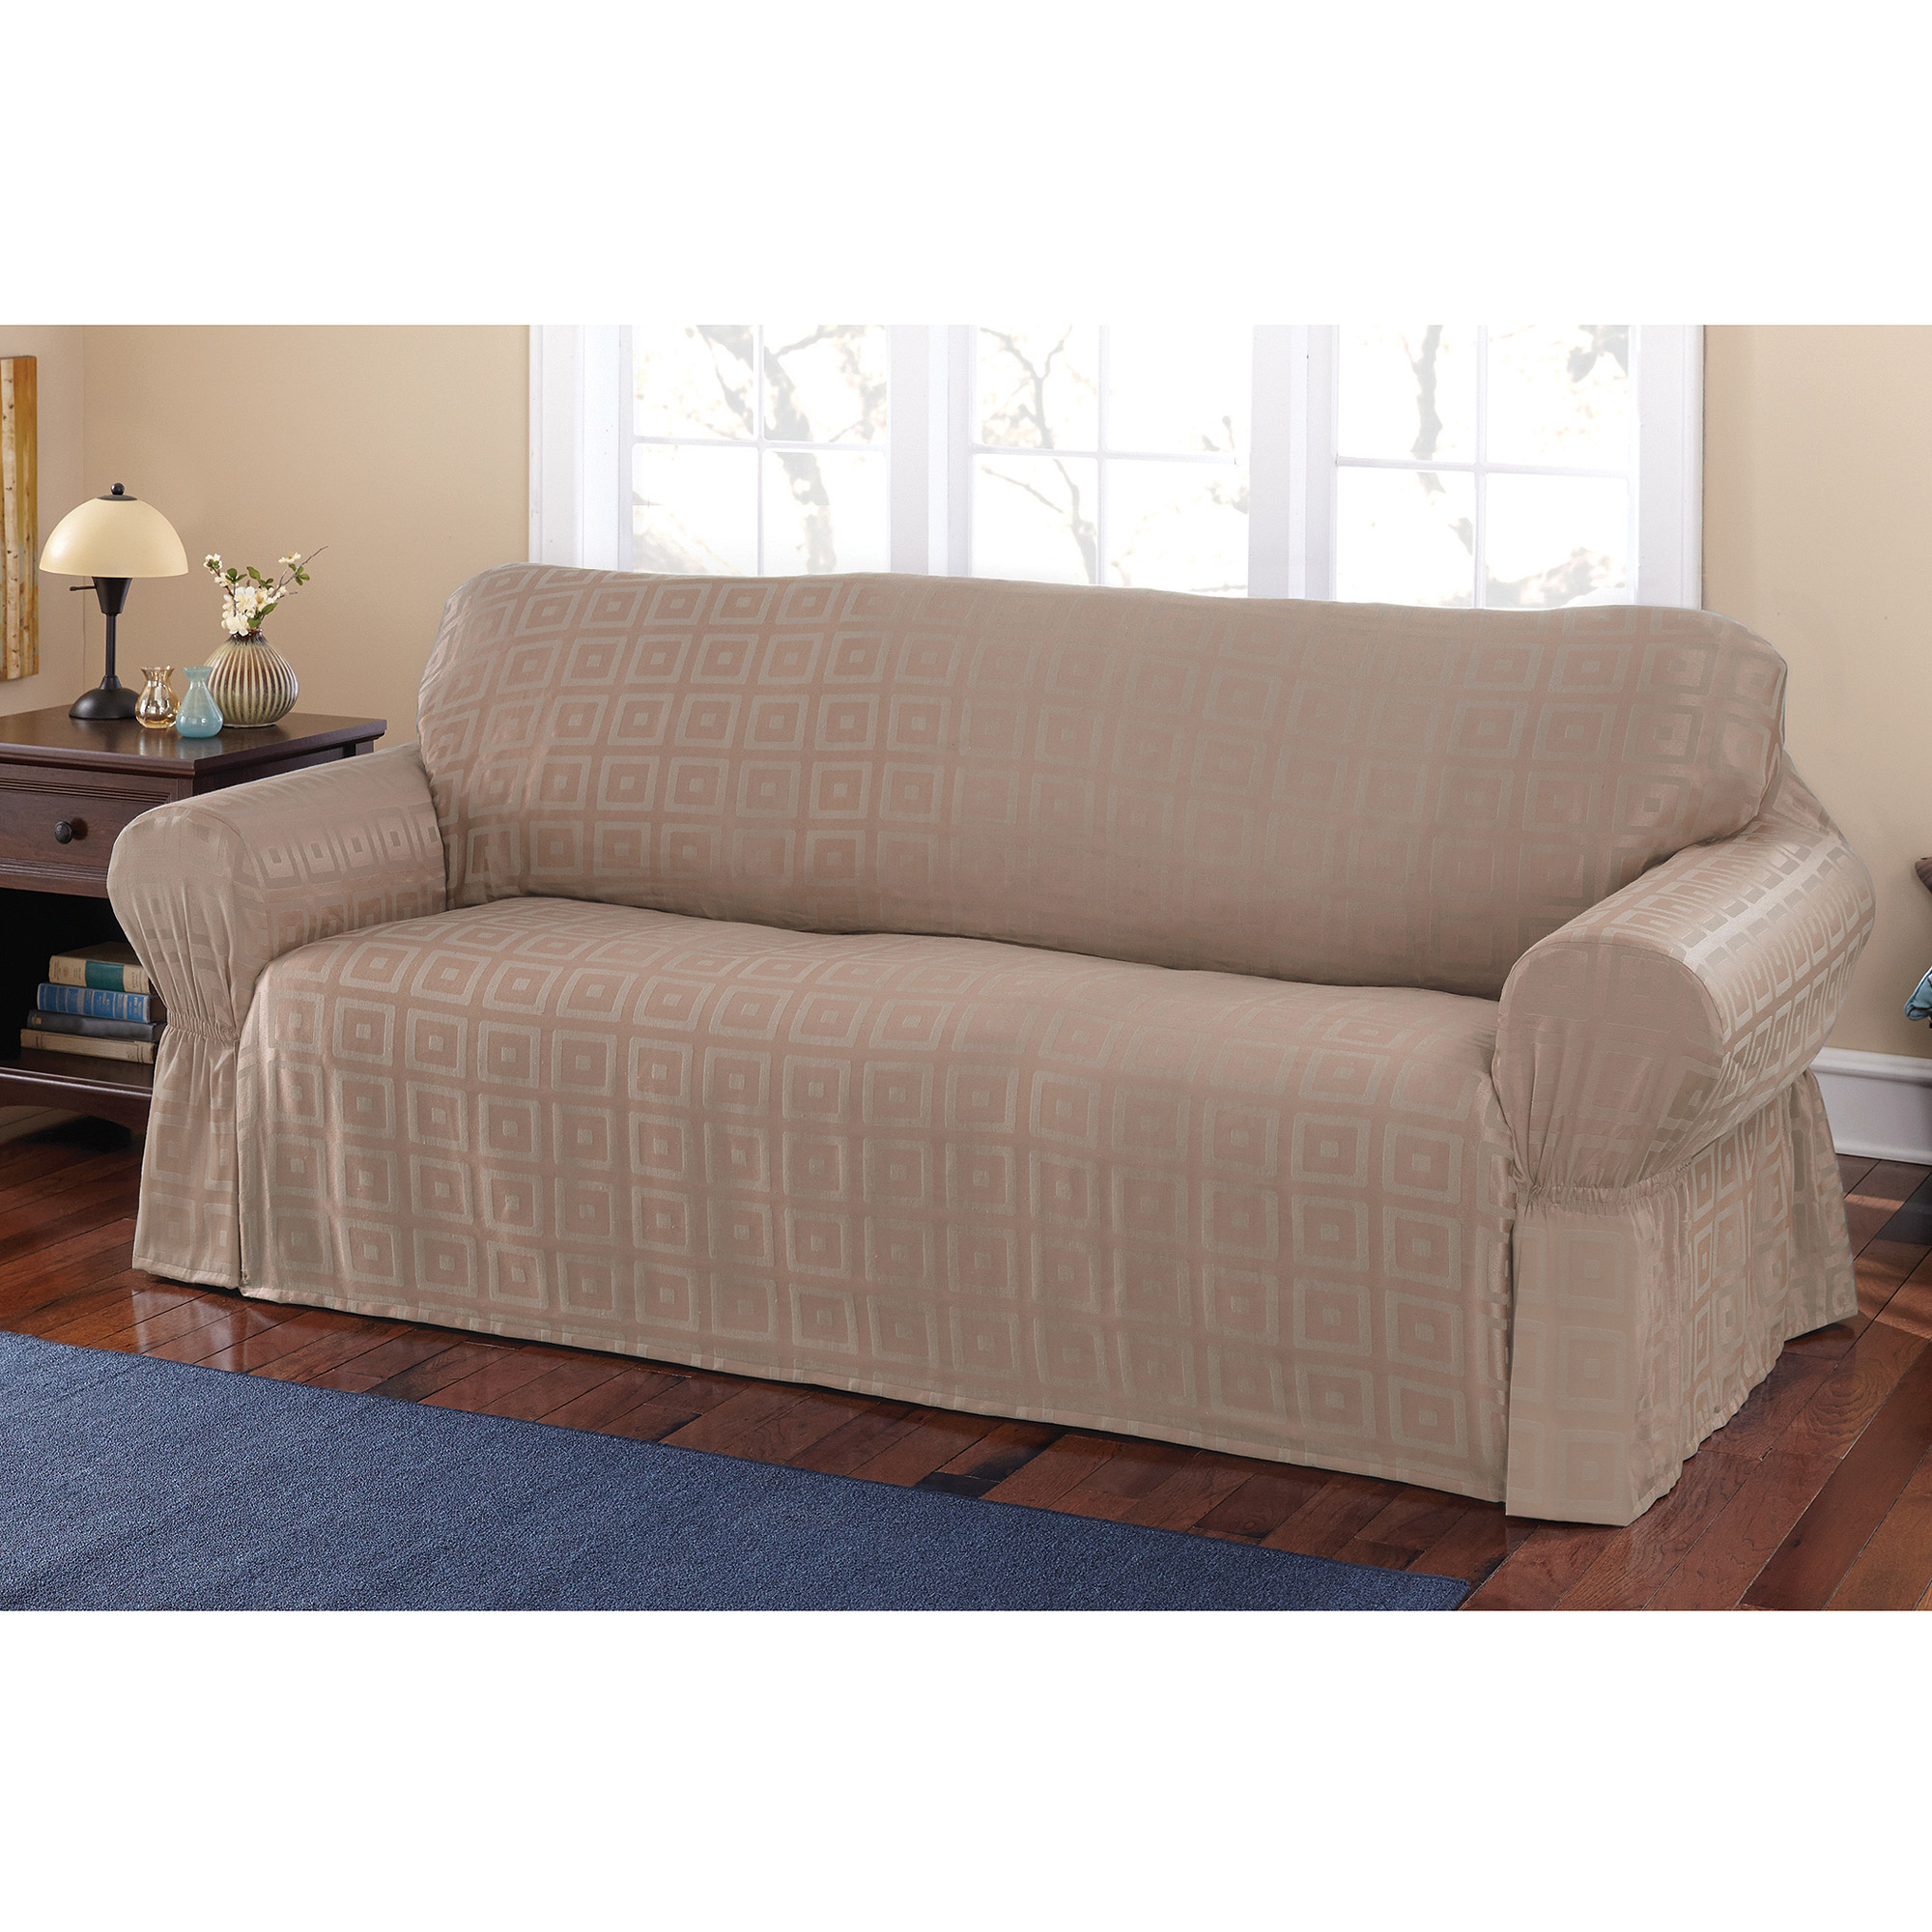 Most Recently Released Chair: Impressive Couches Walmart With Astounding Remark For Awesome With Sofa And Chair Covers (View 7 of 20)